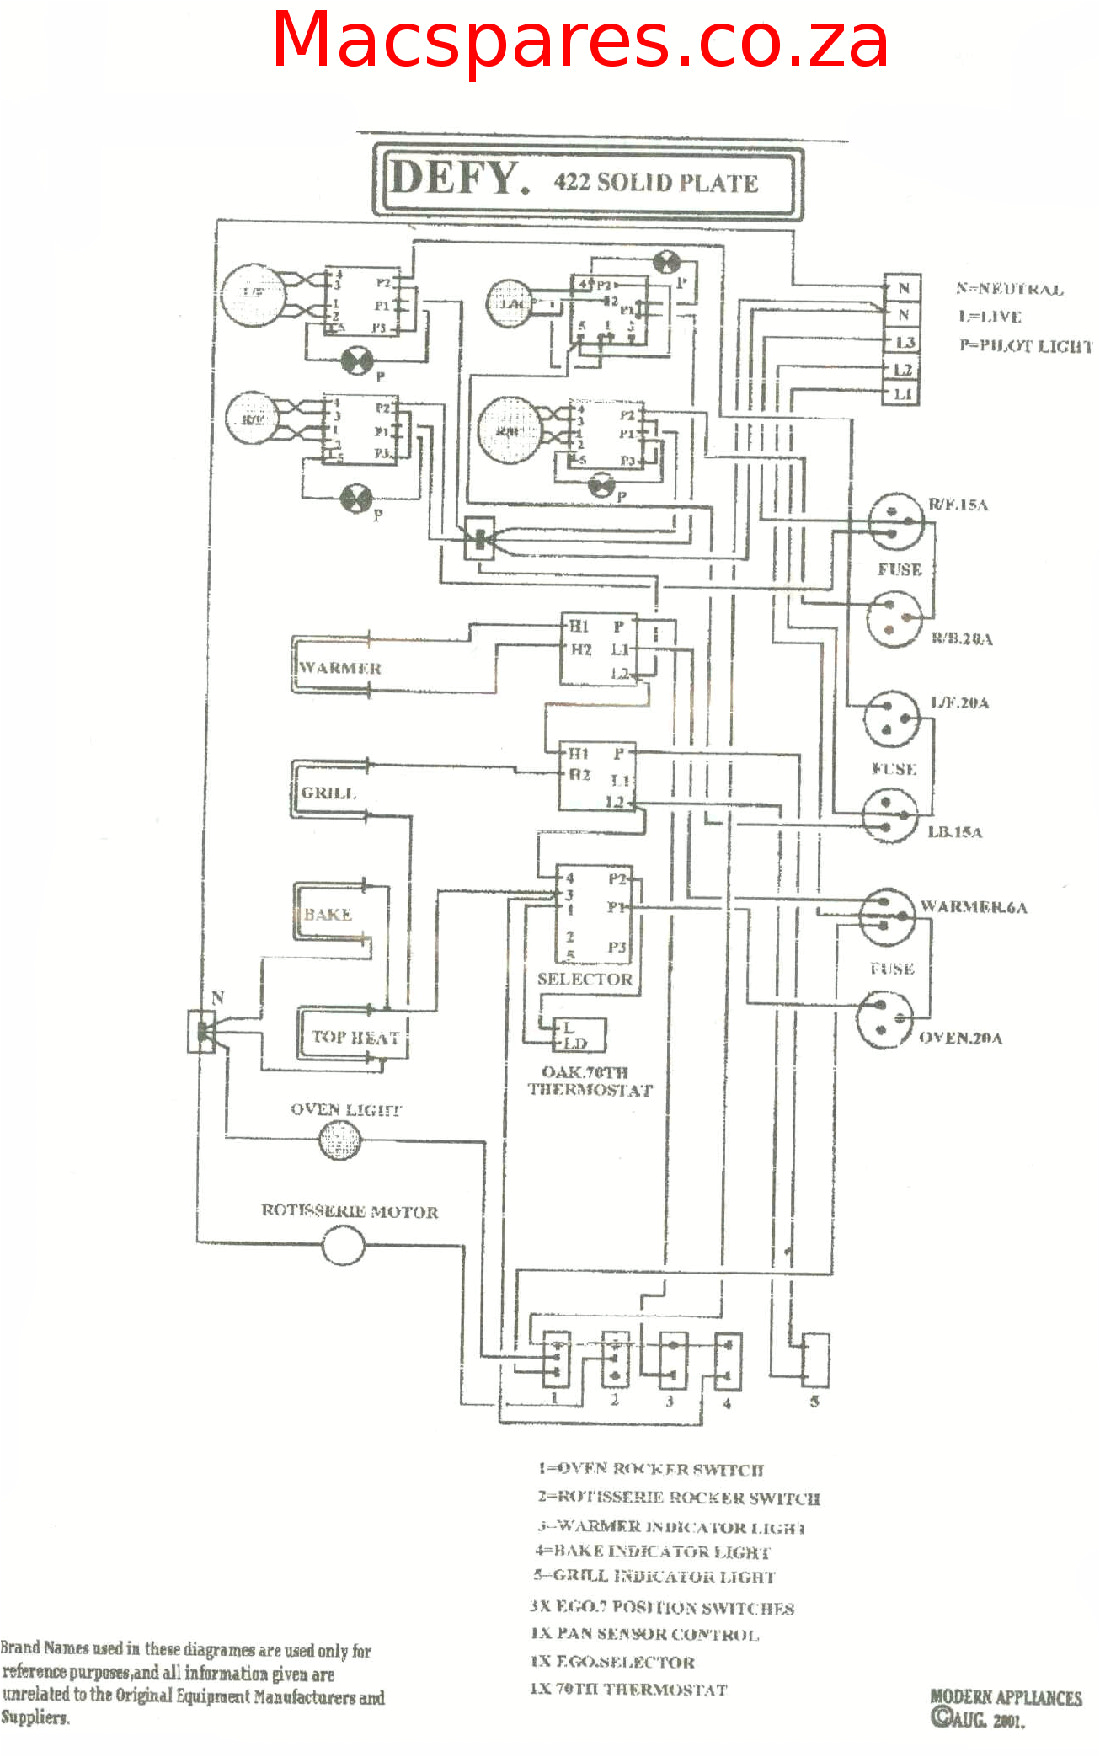 defy gemini oven wiring diagram awesome stoves defy wiring diagram collection